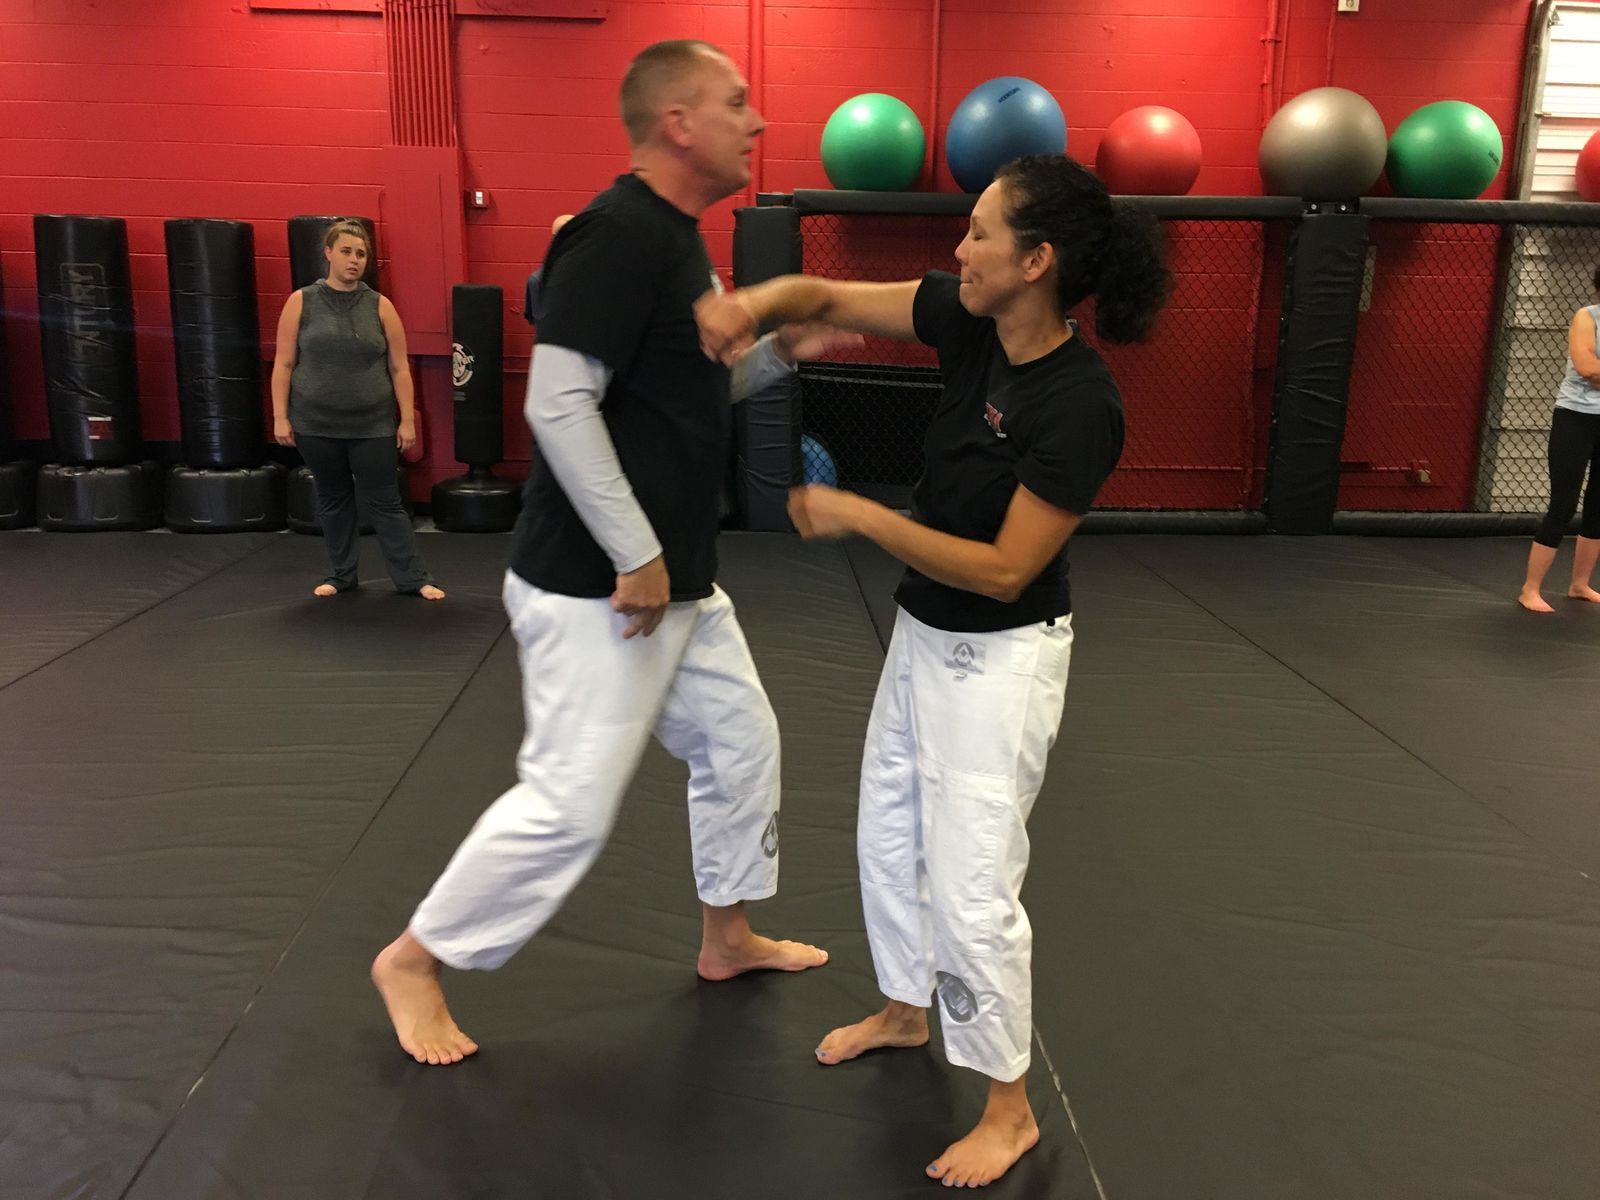 A local self defense class is teaching women how to defend against some of the most common attacks.